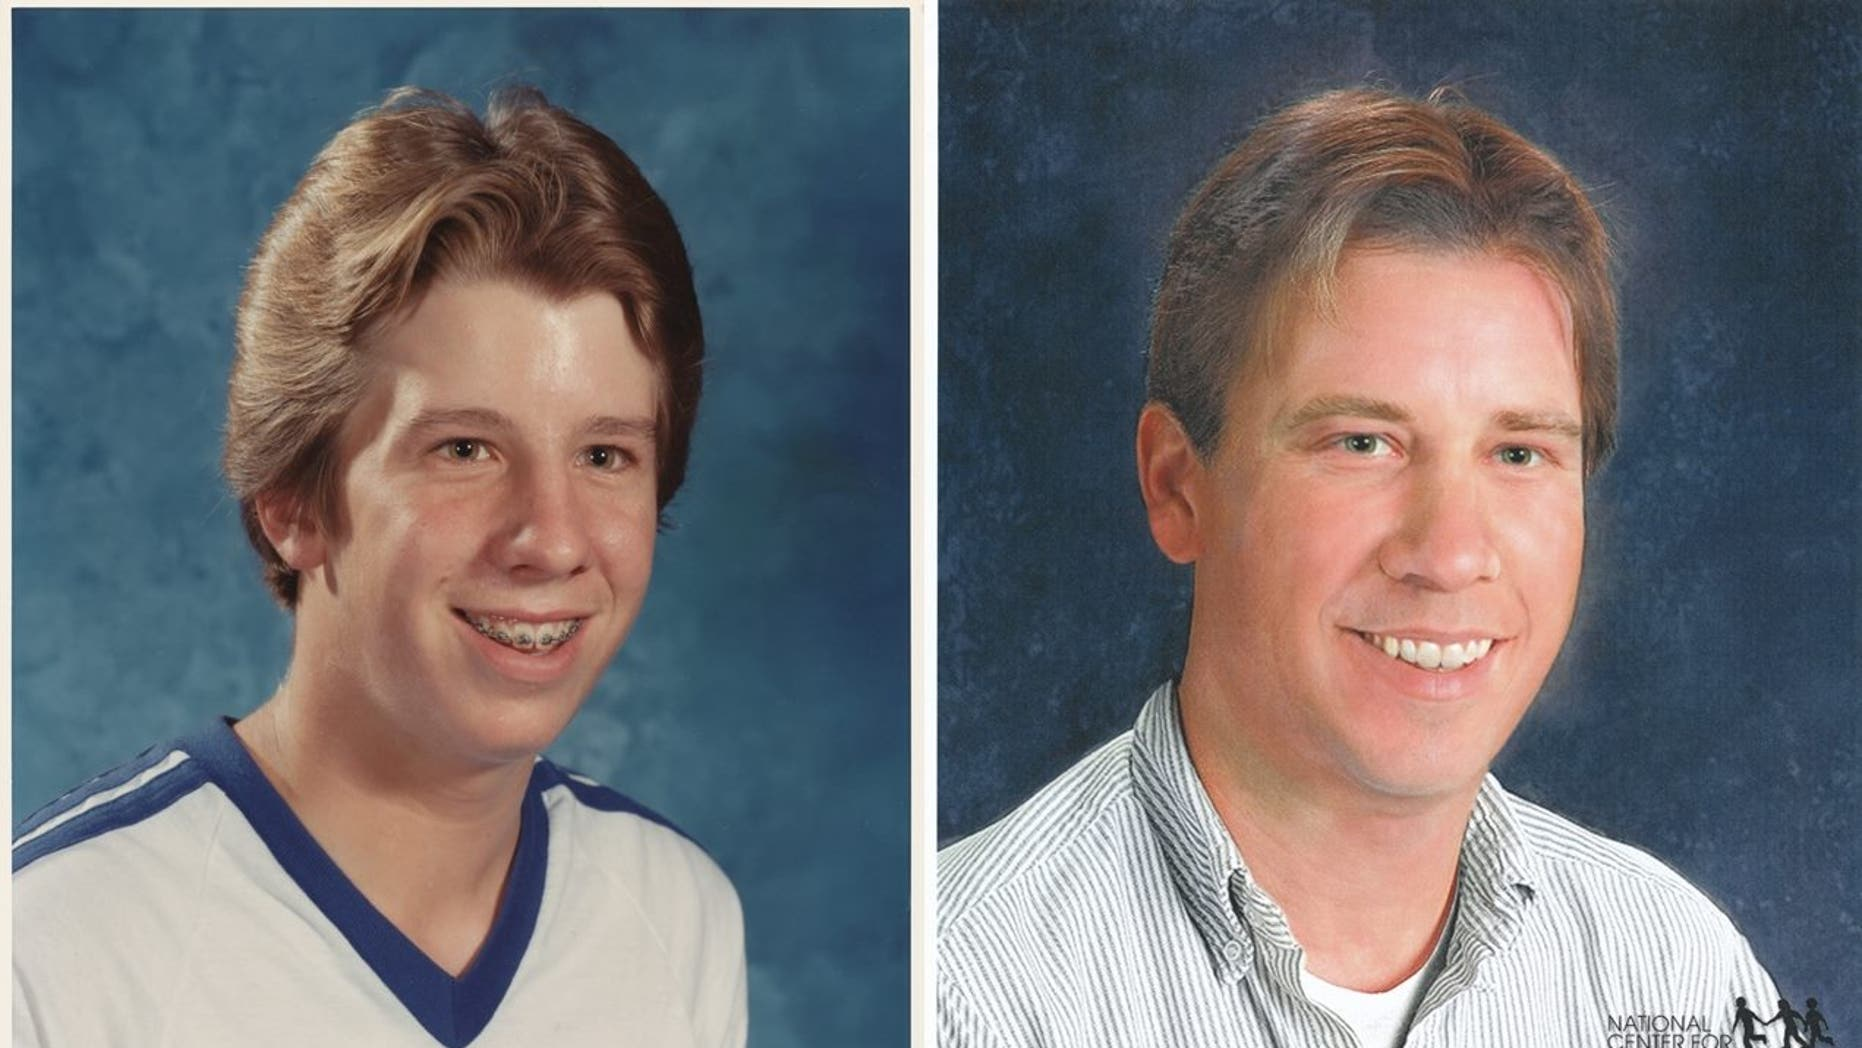 Naylor, left, is pictured at age 14 in 1982. Naylor's age-progressed image, right, shows what he would have looked like 2012.